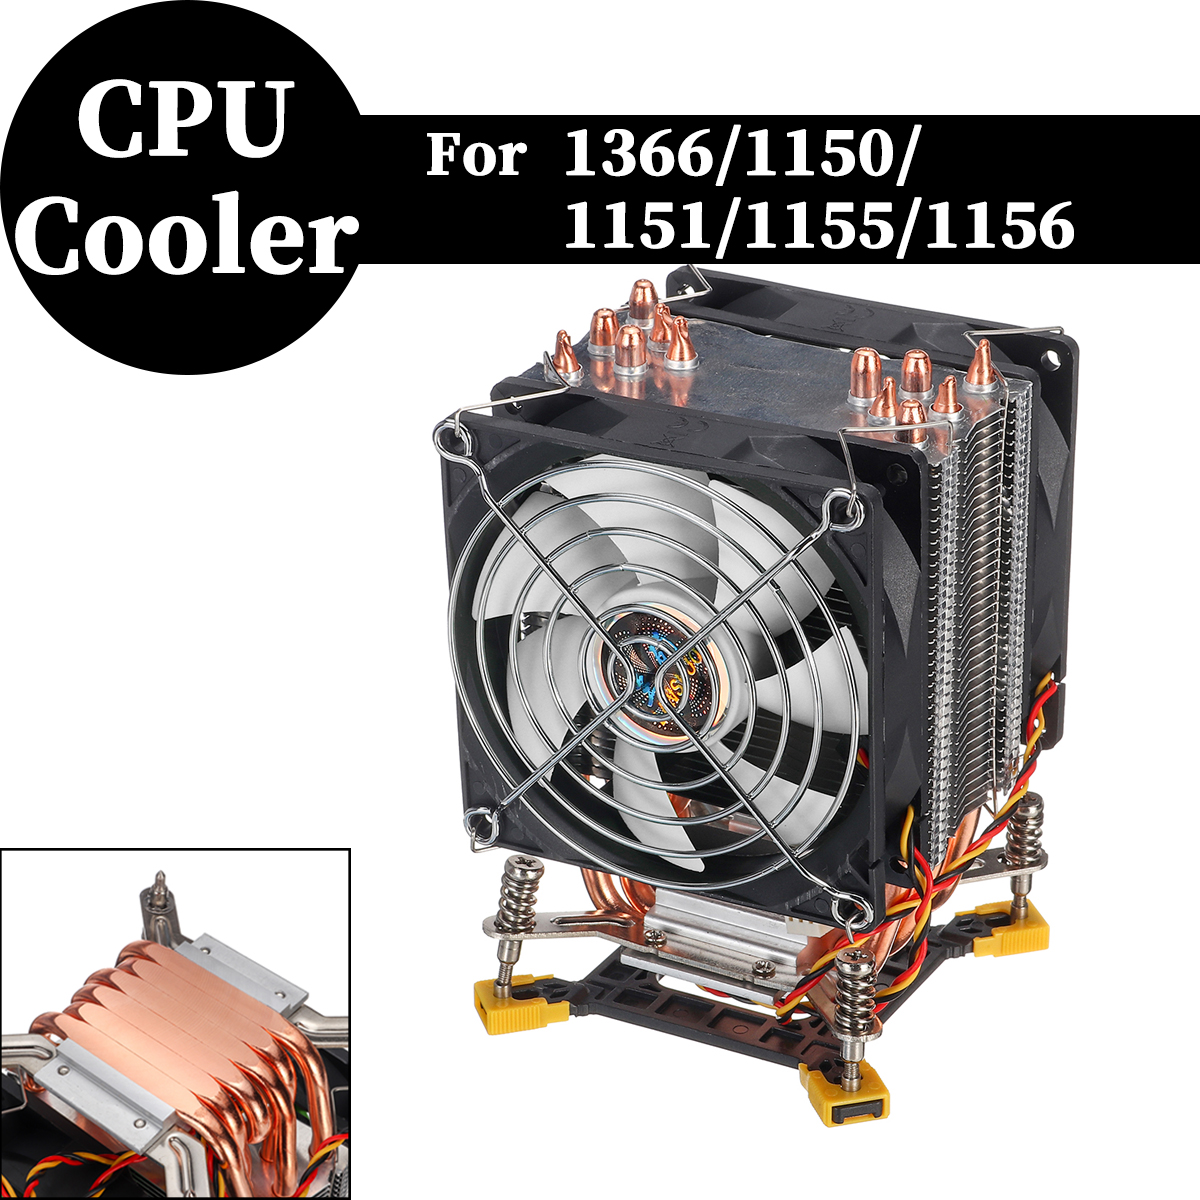 Blade Color: only AMD, Blade Quantity: 1 Fan Rarido 4PIN CPU Cooler 115X 1366 2011,6 heatpipe Dual-Tower Cooling 9cm Fan,Support Intel AMD